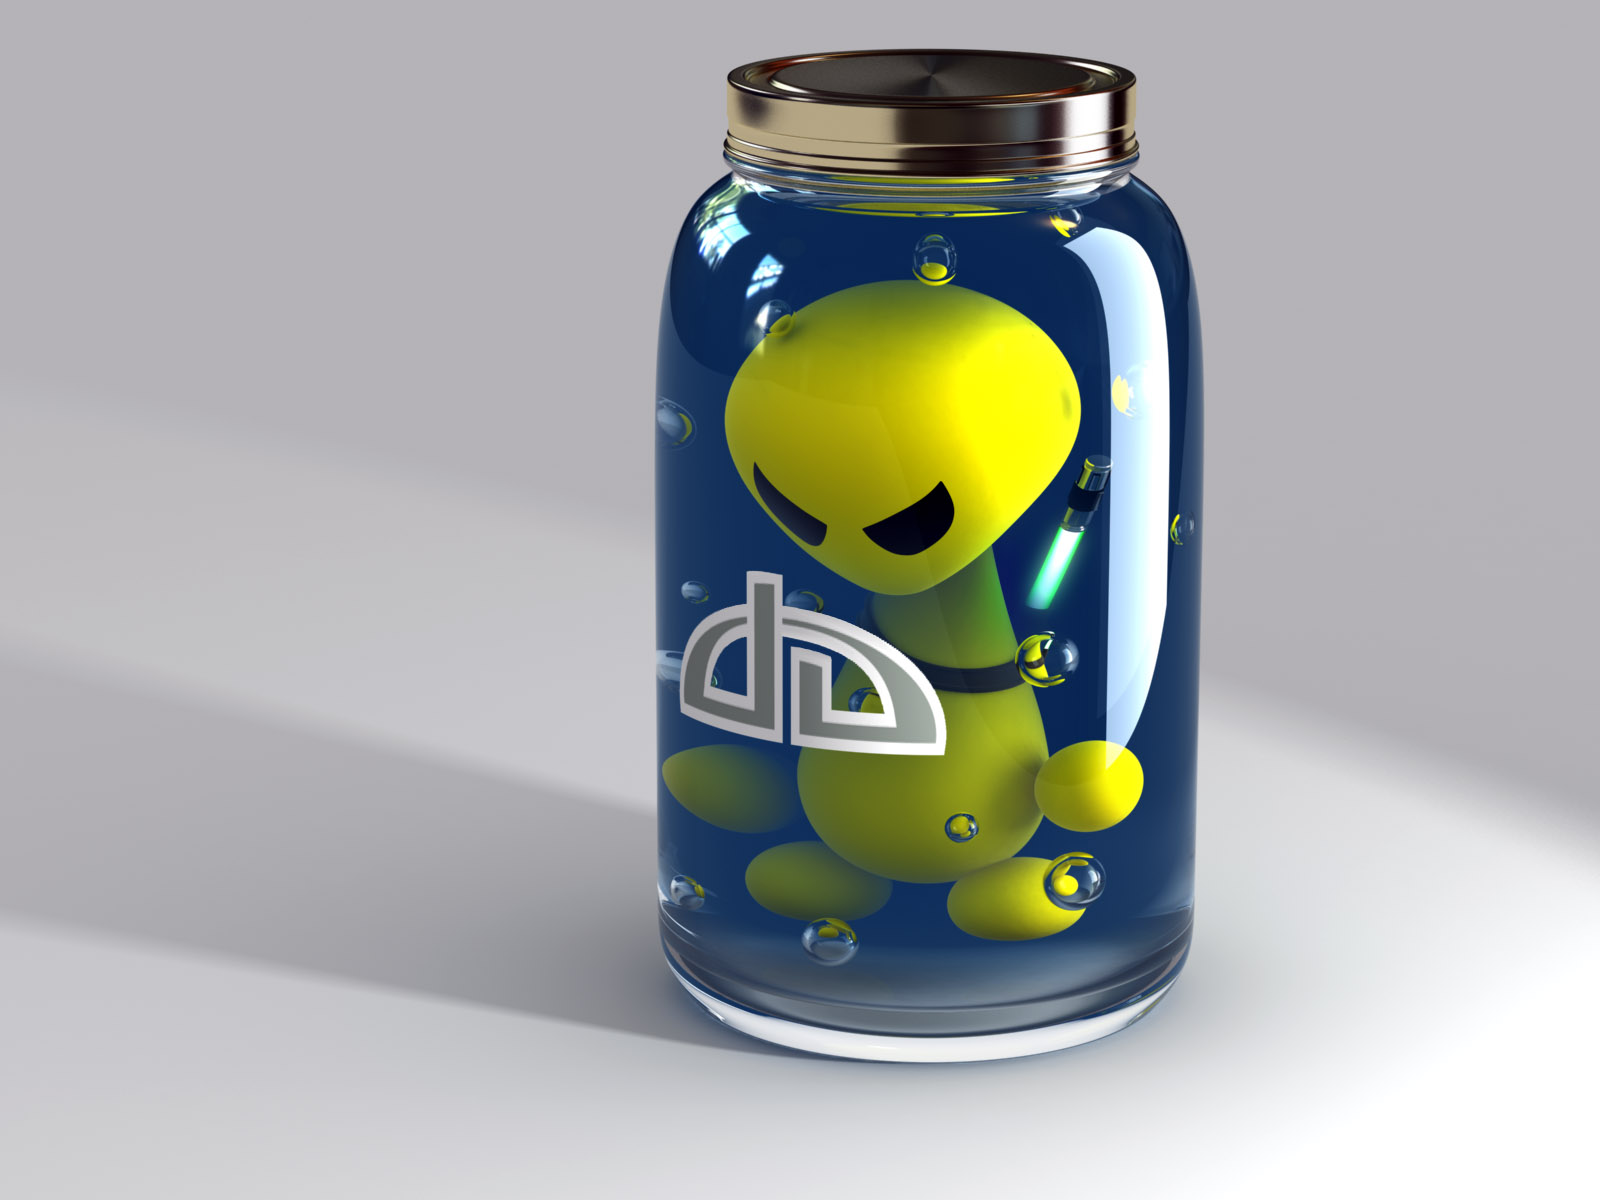 Jark in a Jar